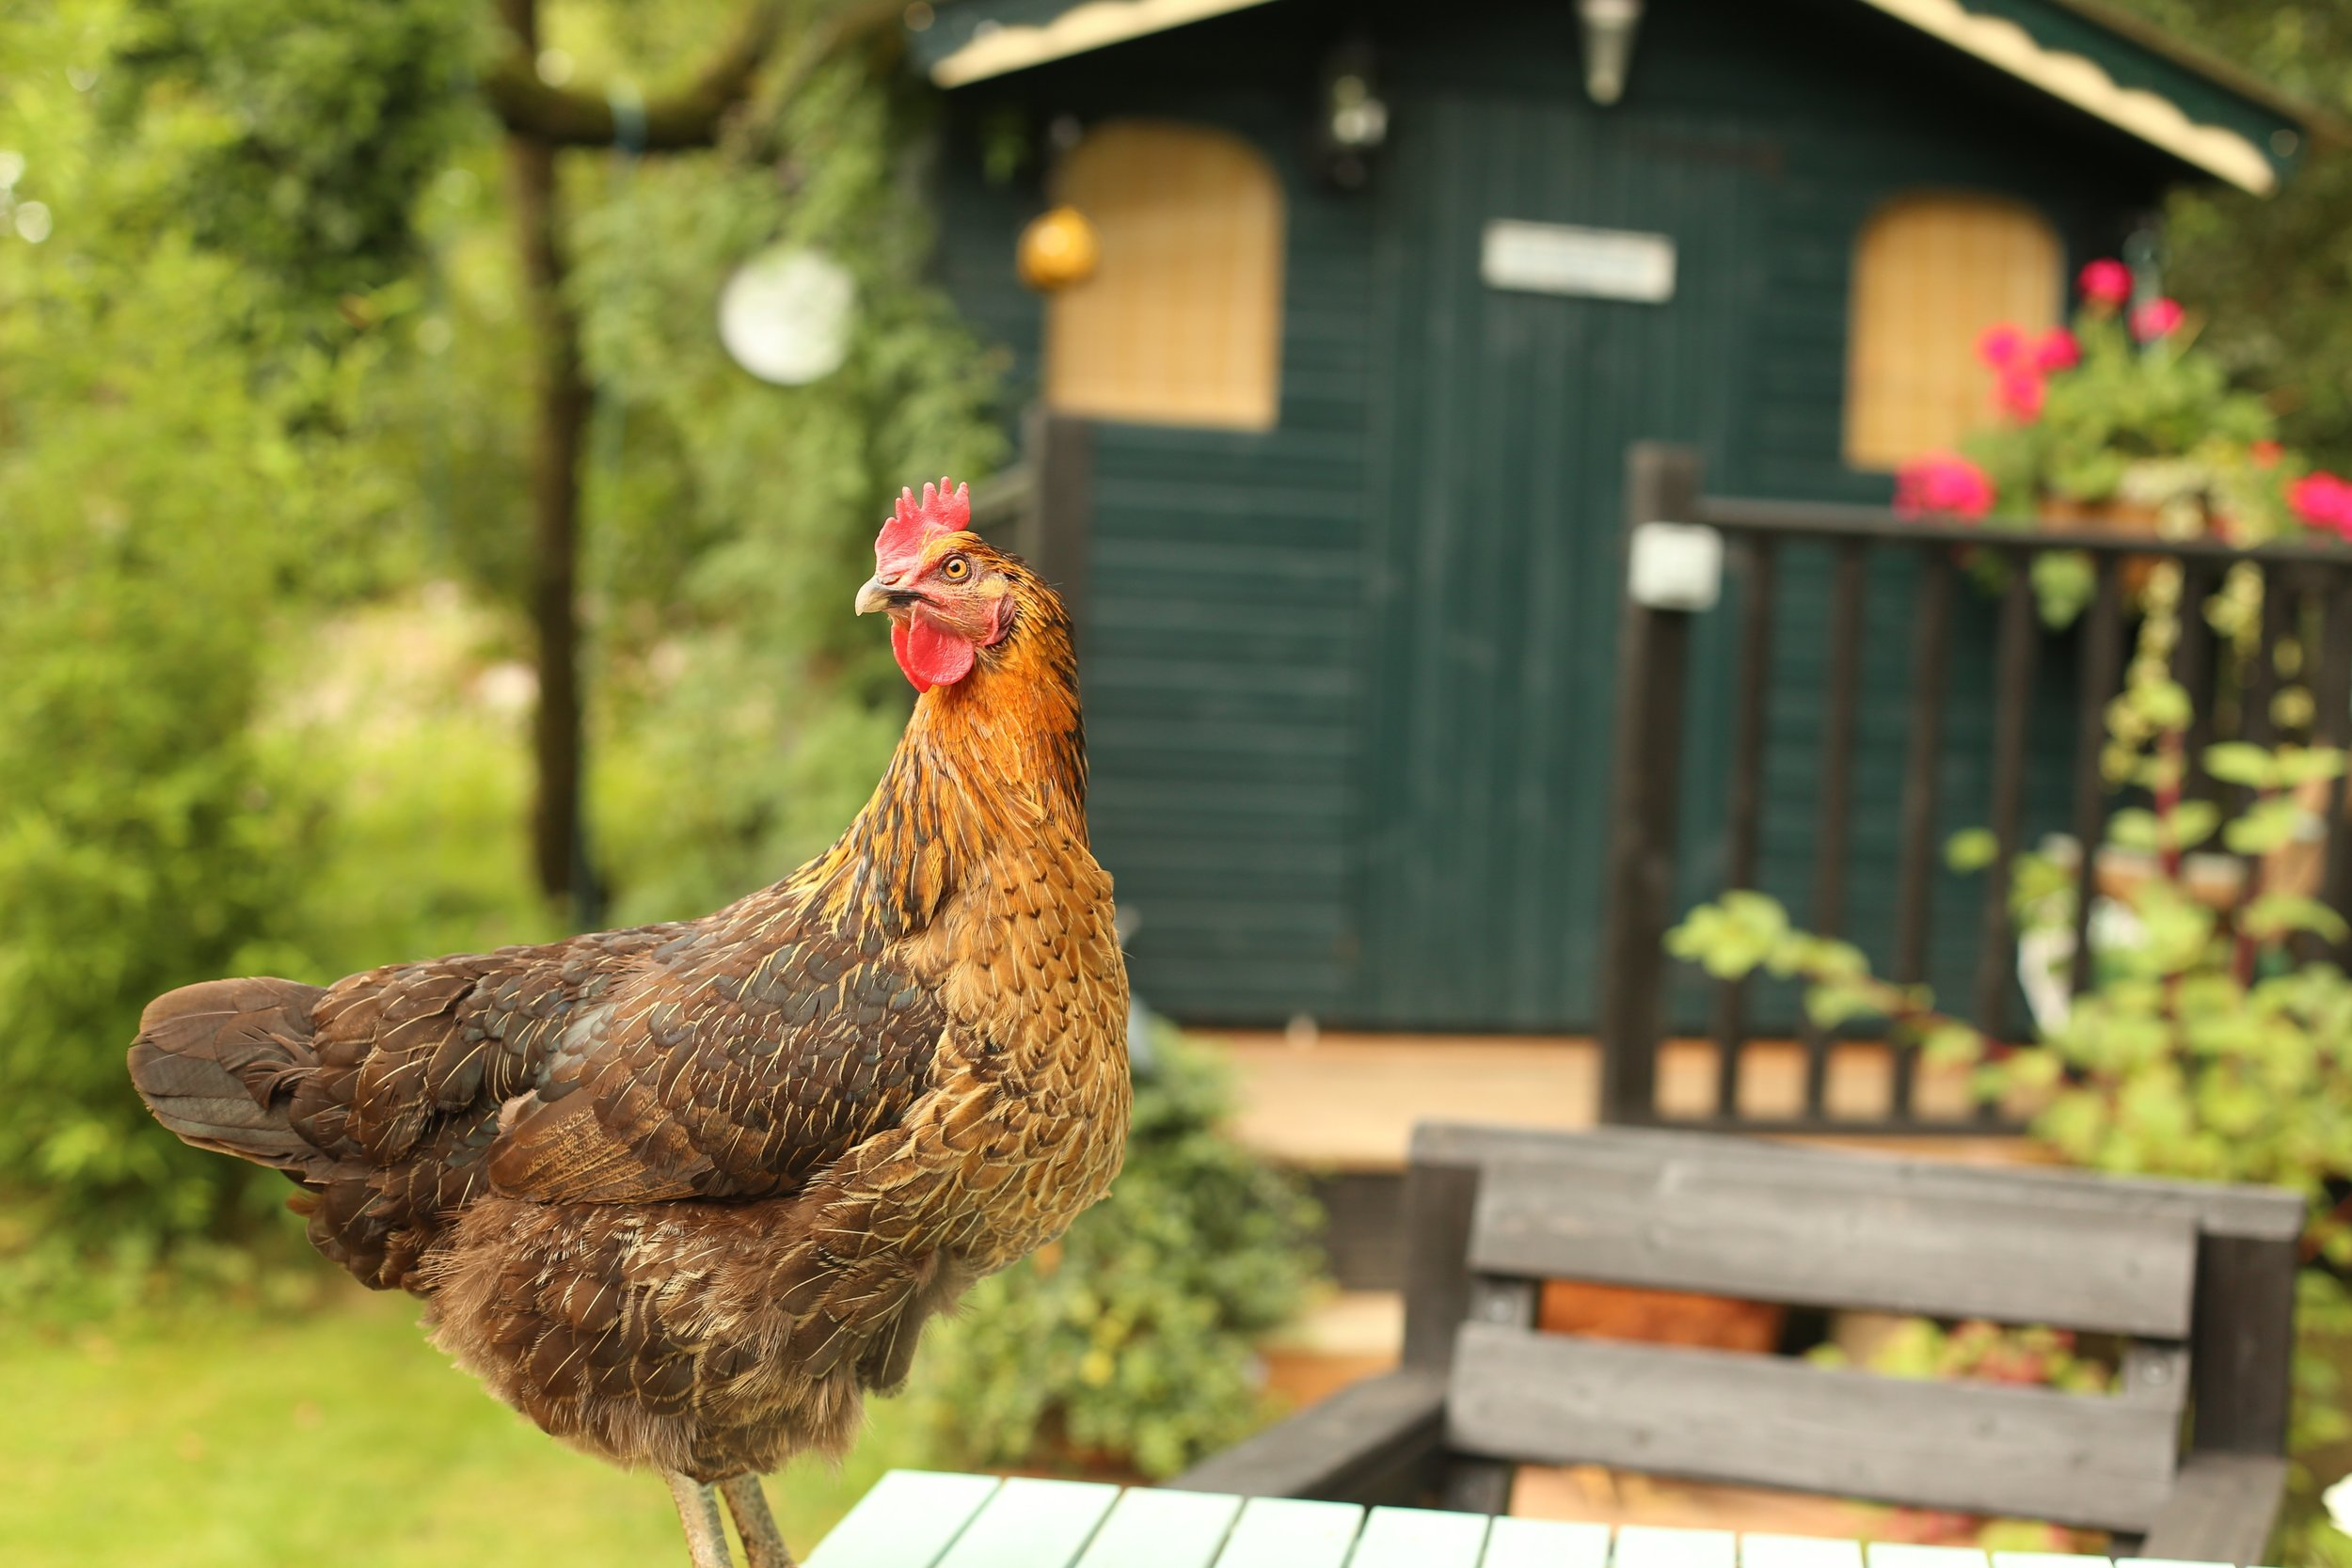 You Have To Read This Family's Obituary For Their Pet Chicken